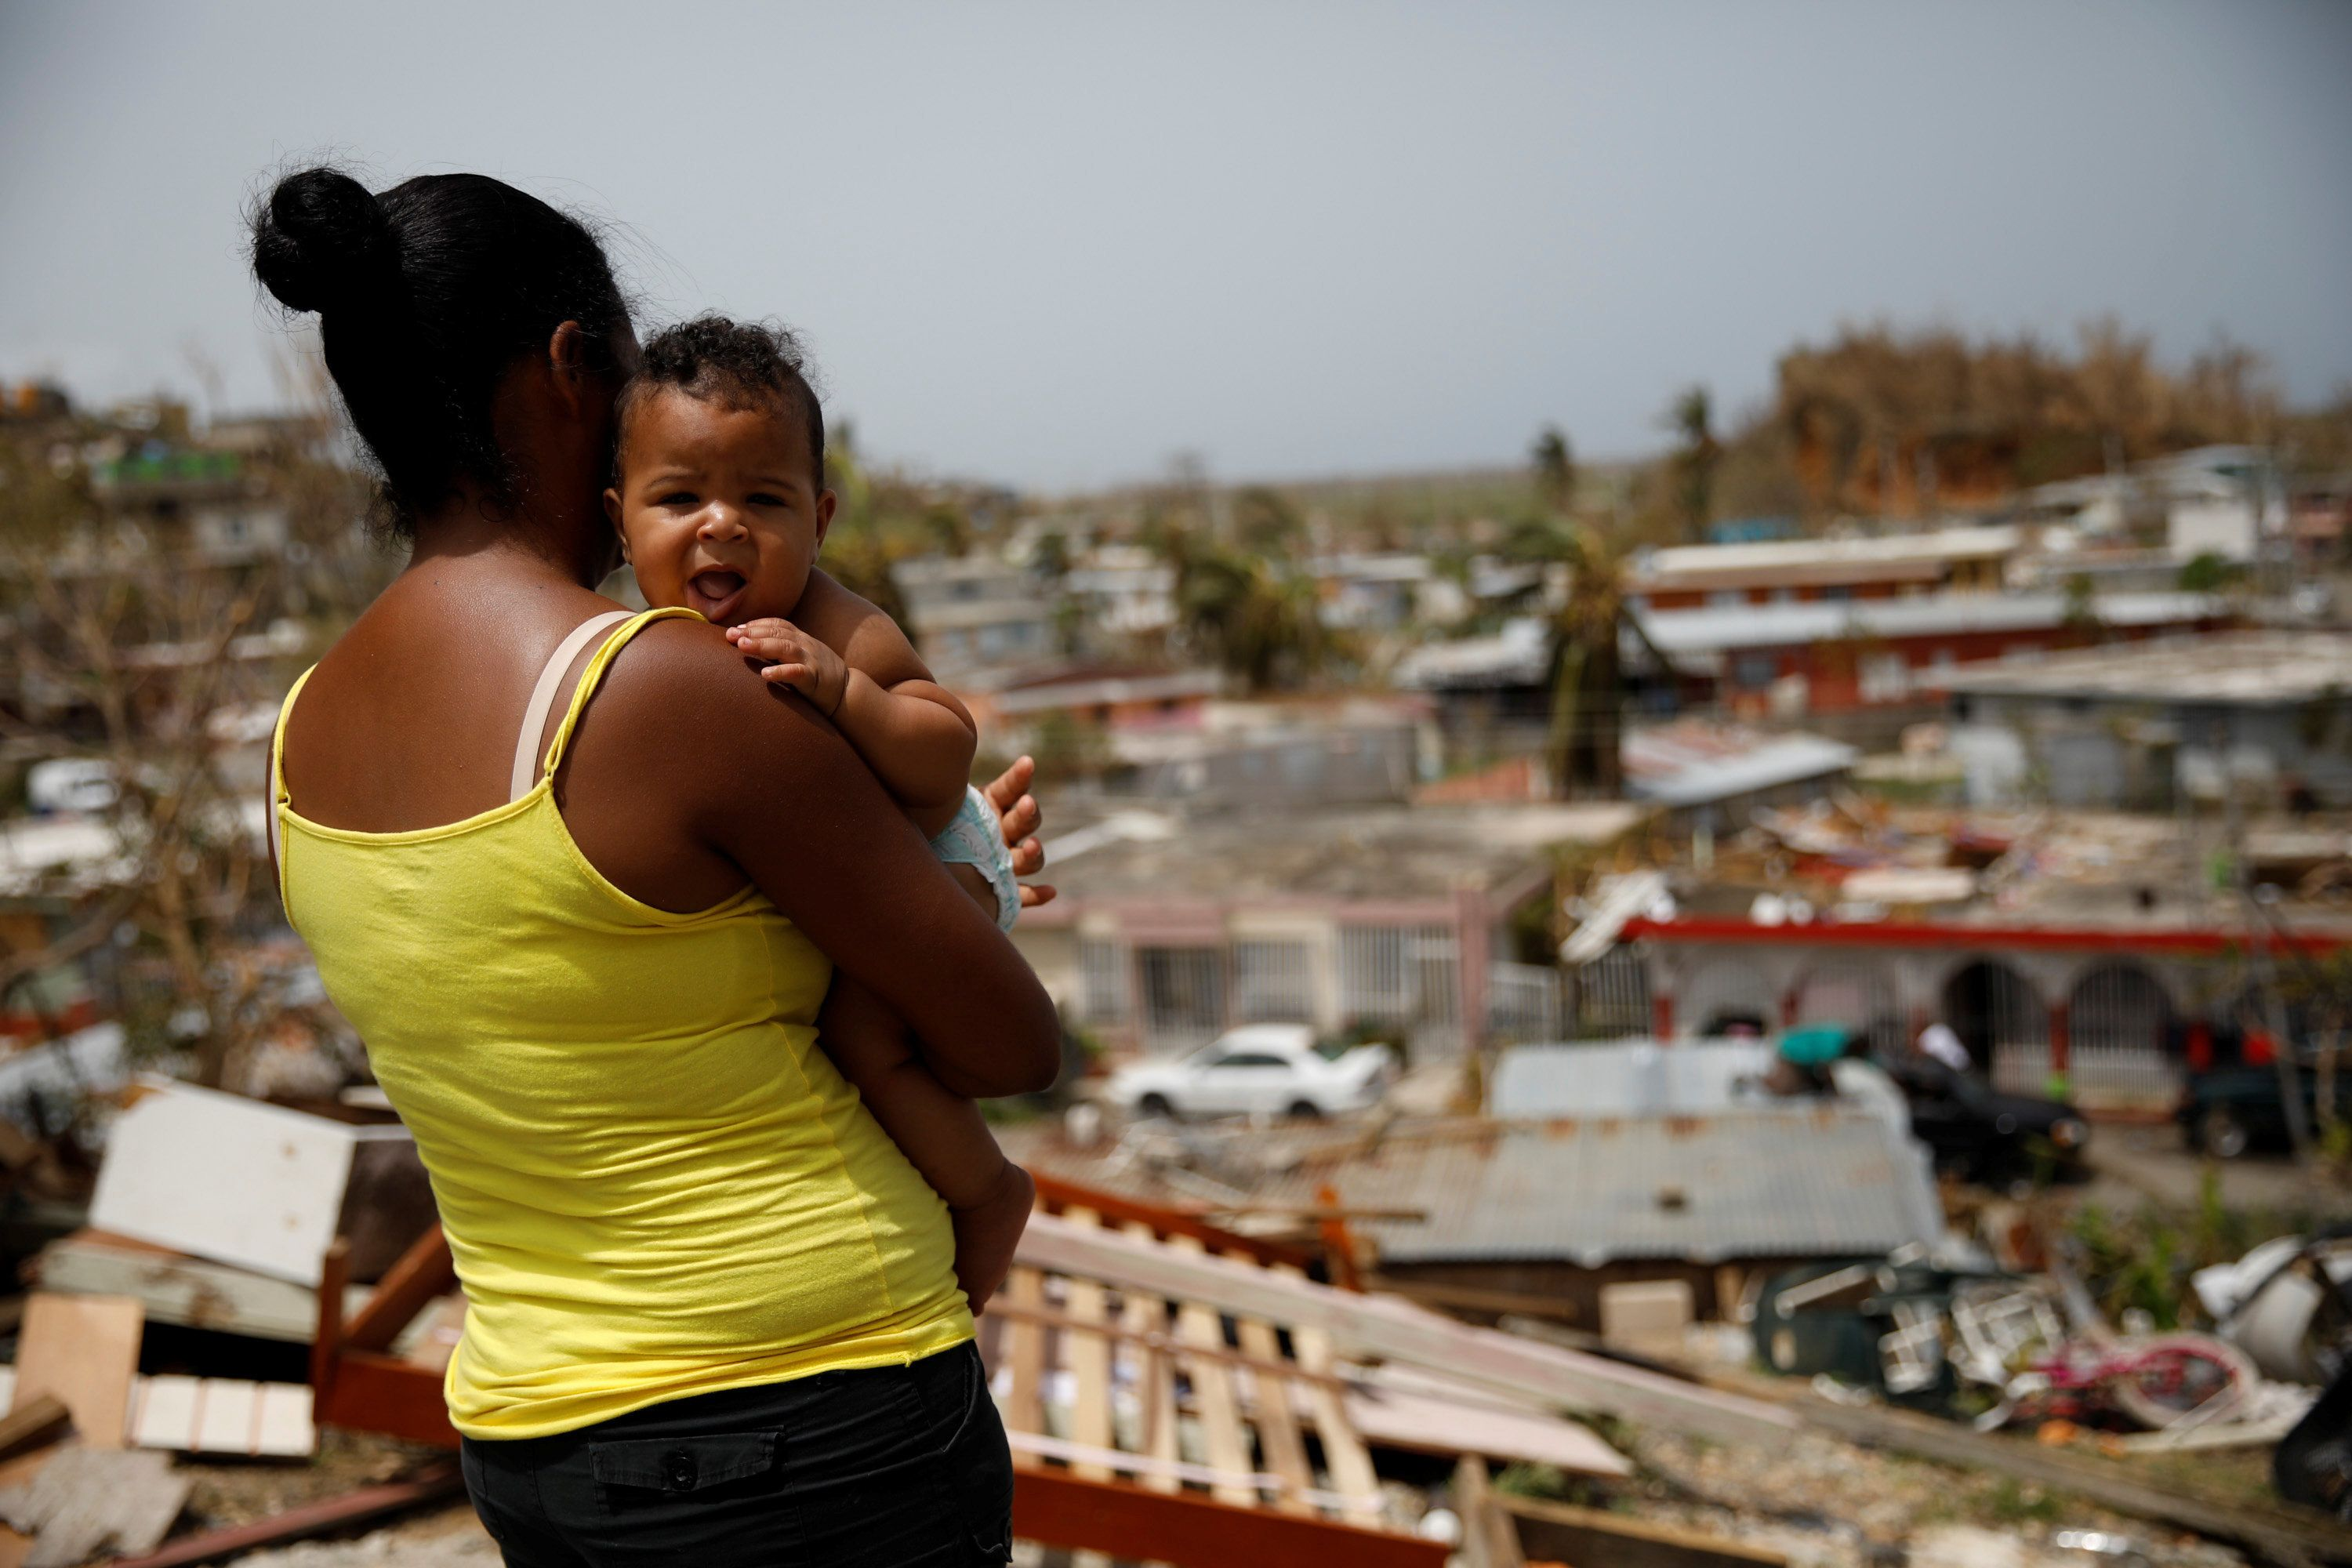 Ysamar Figueroa carrying her son Saniel, looks at the damage in the neighbourhood after the area was hit by Hurricane Maria, in Canovanas, Puerto Rico September 26, 2017. REUTERS/Carlos Garcia Rawlins